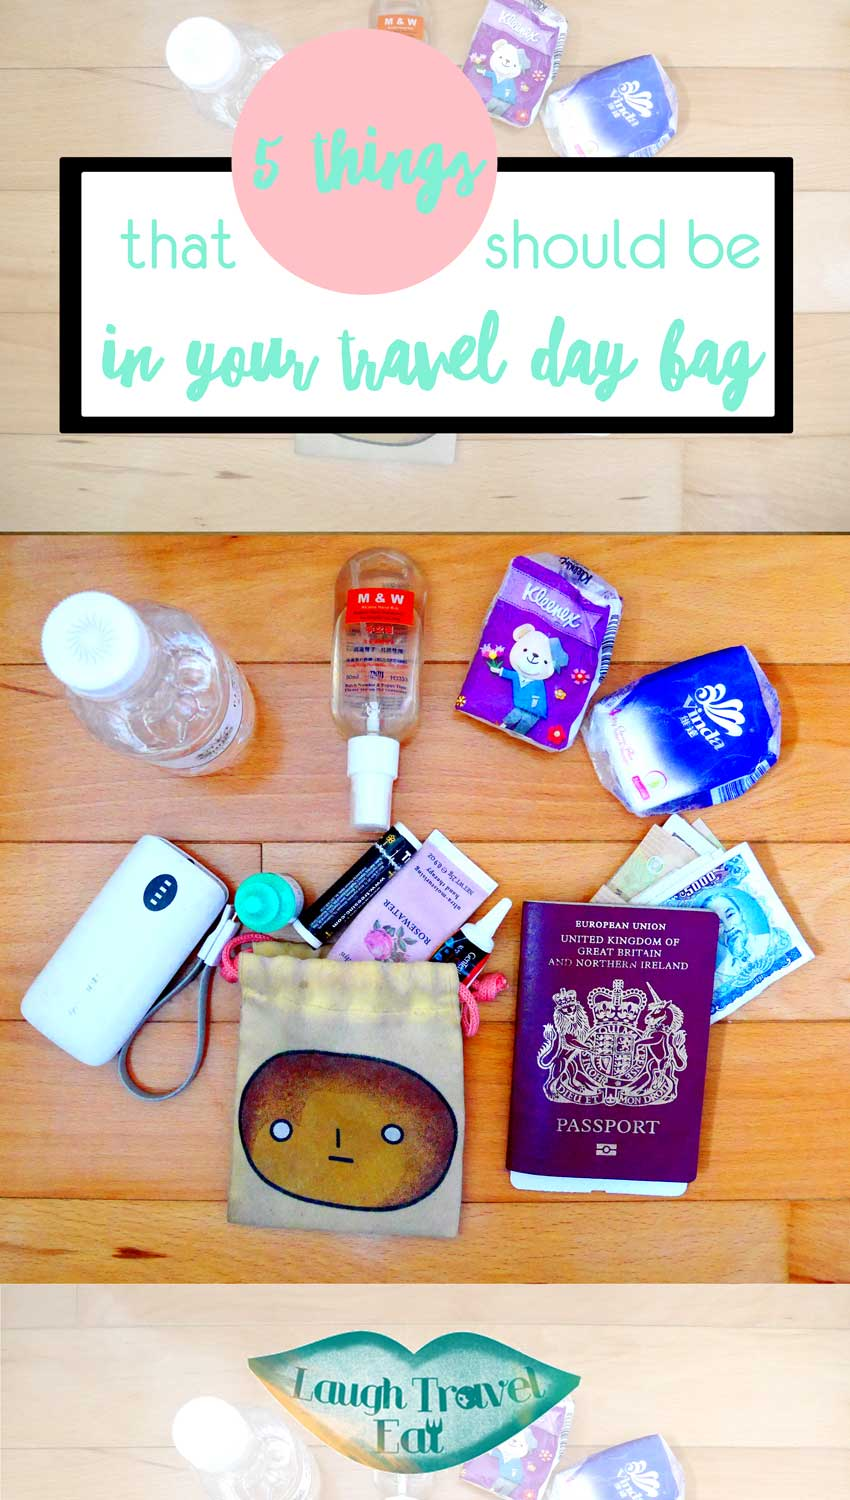 5 things that should be in your travel day bag | Laugh Travel Eat